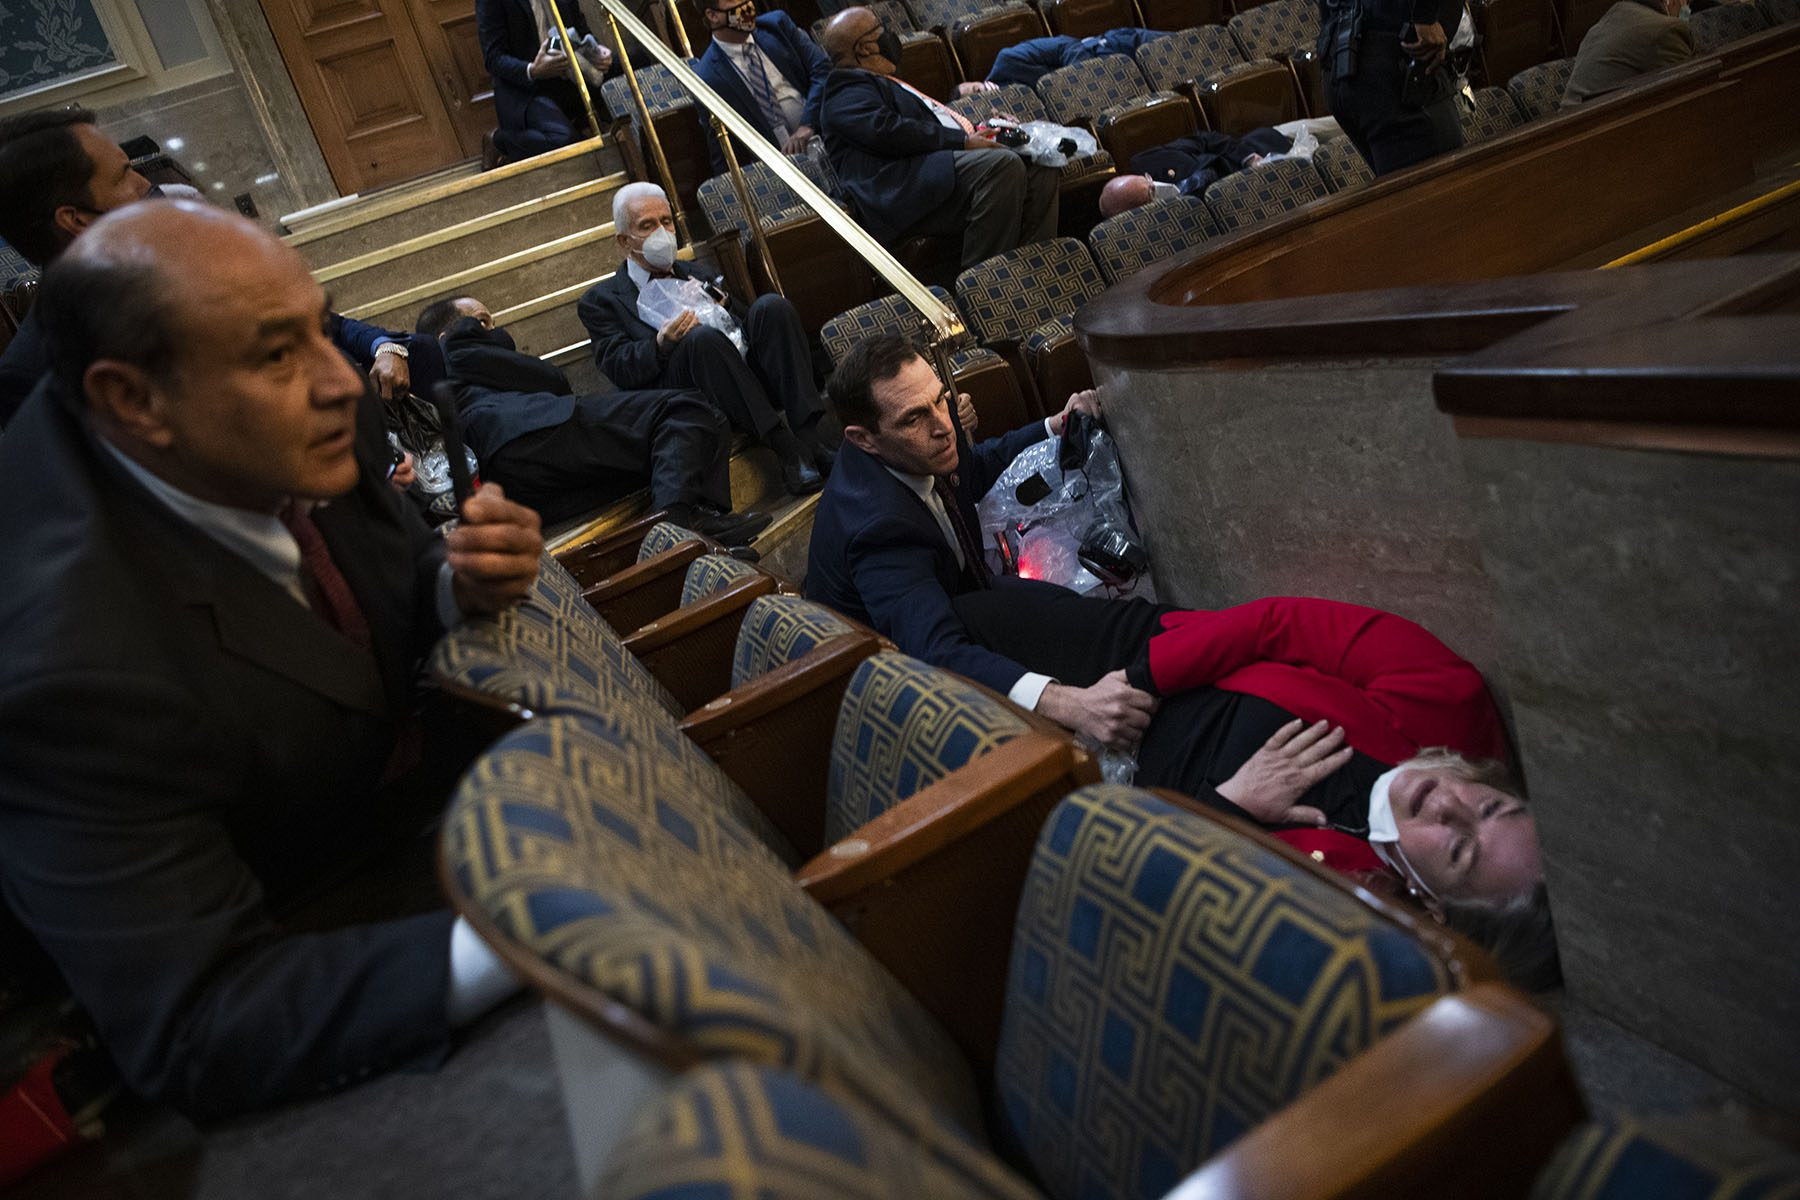 Rep. Susan Wild lays on the floor holding her hand over her heart while Rep. Jason Crow holds her hand to comfort her.